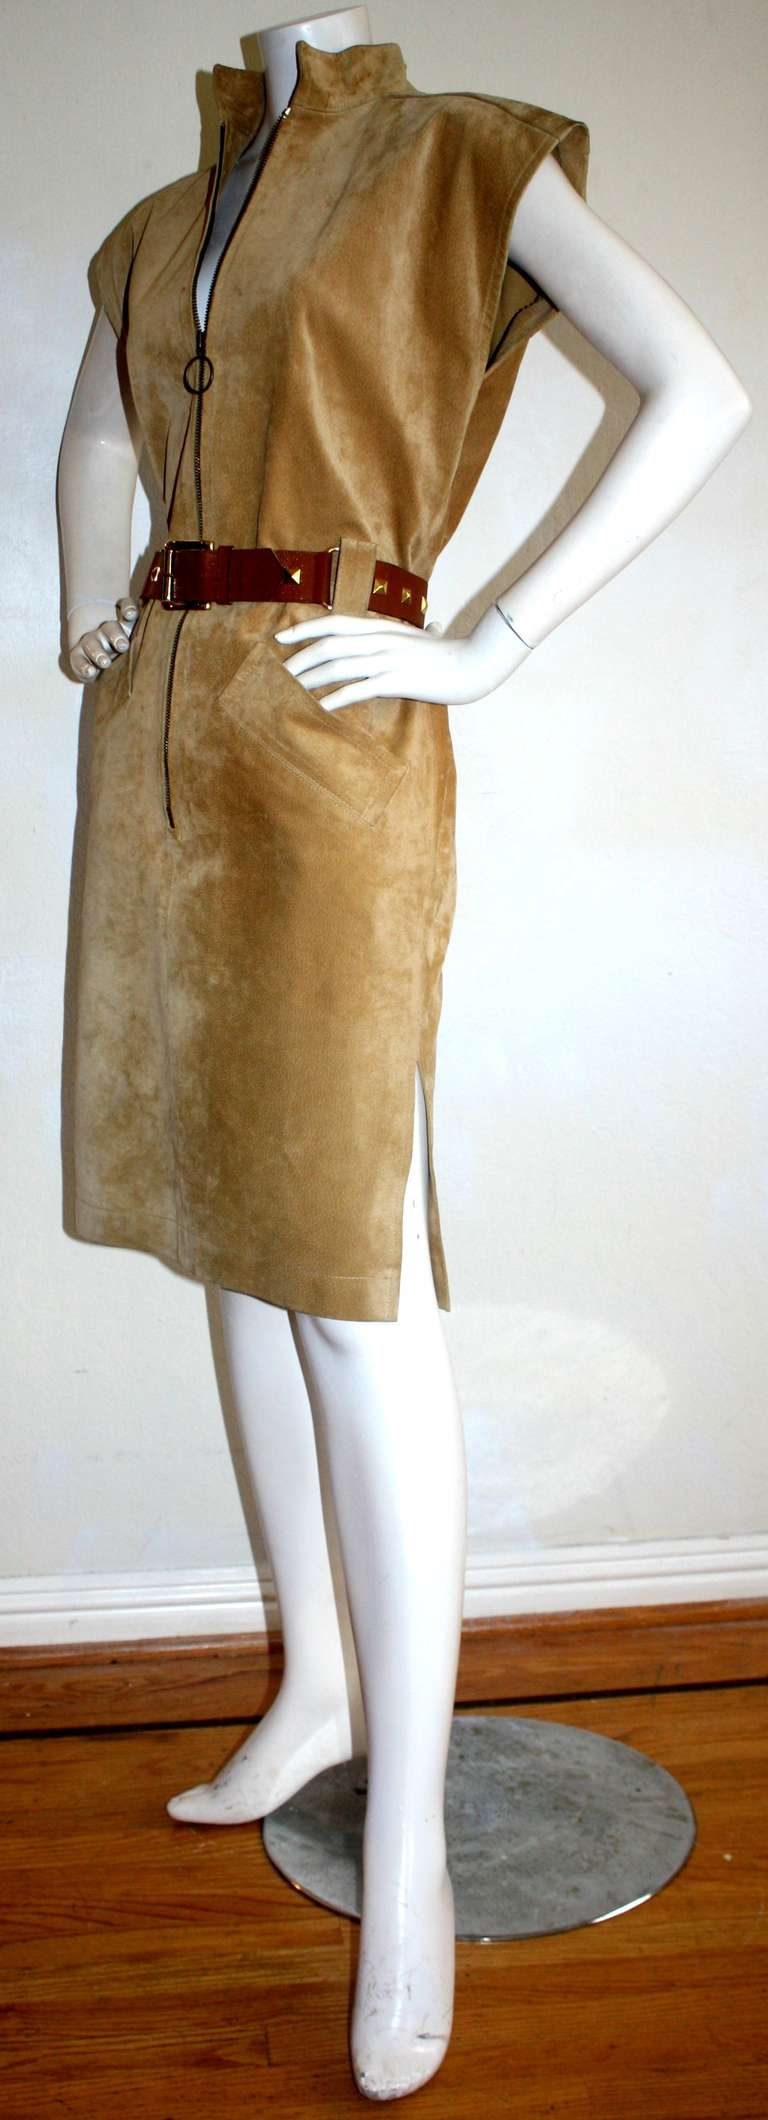 Yves Saint Laurent Vintage Pigskin Leather Suede Safari Dress 3